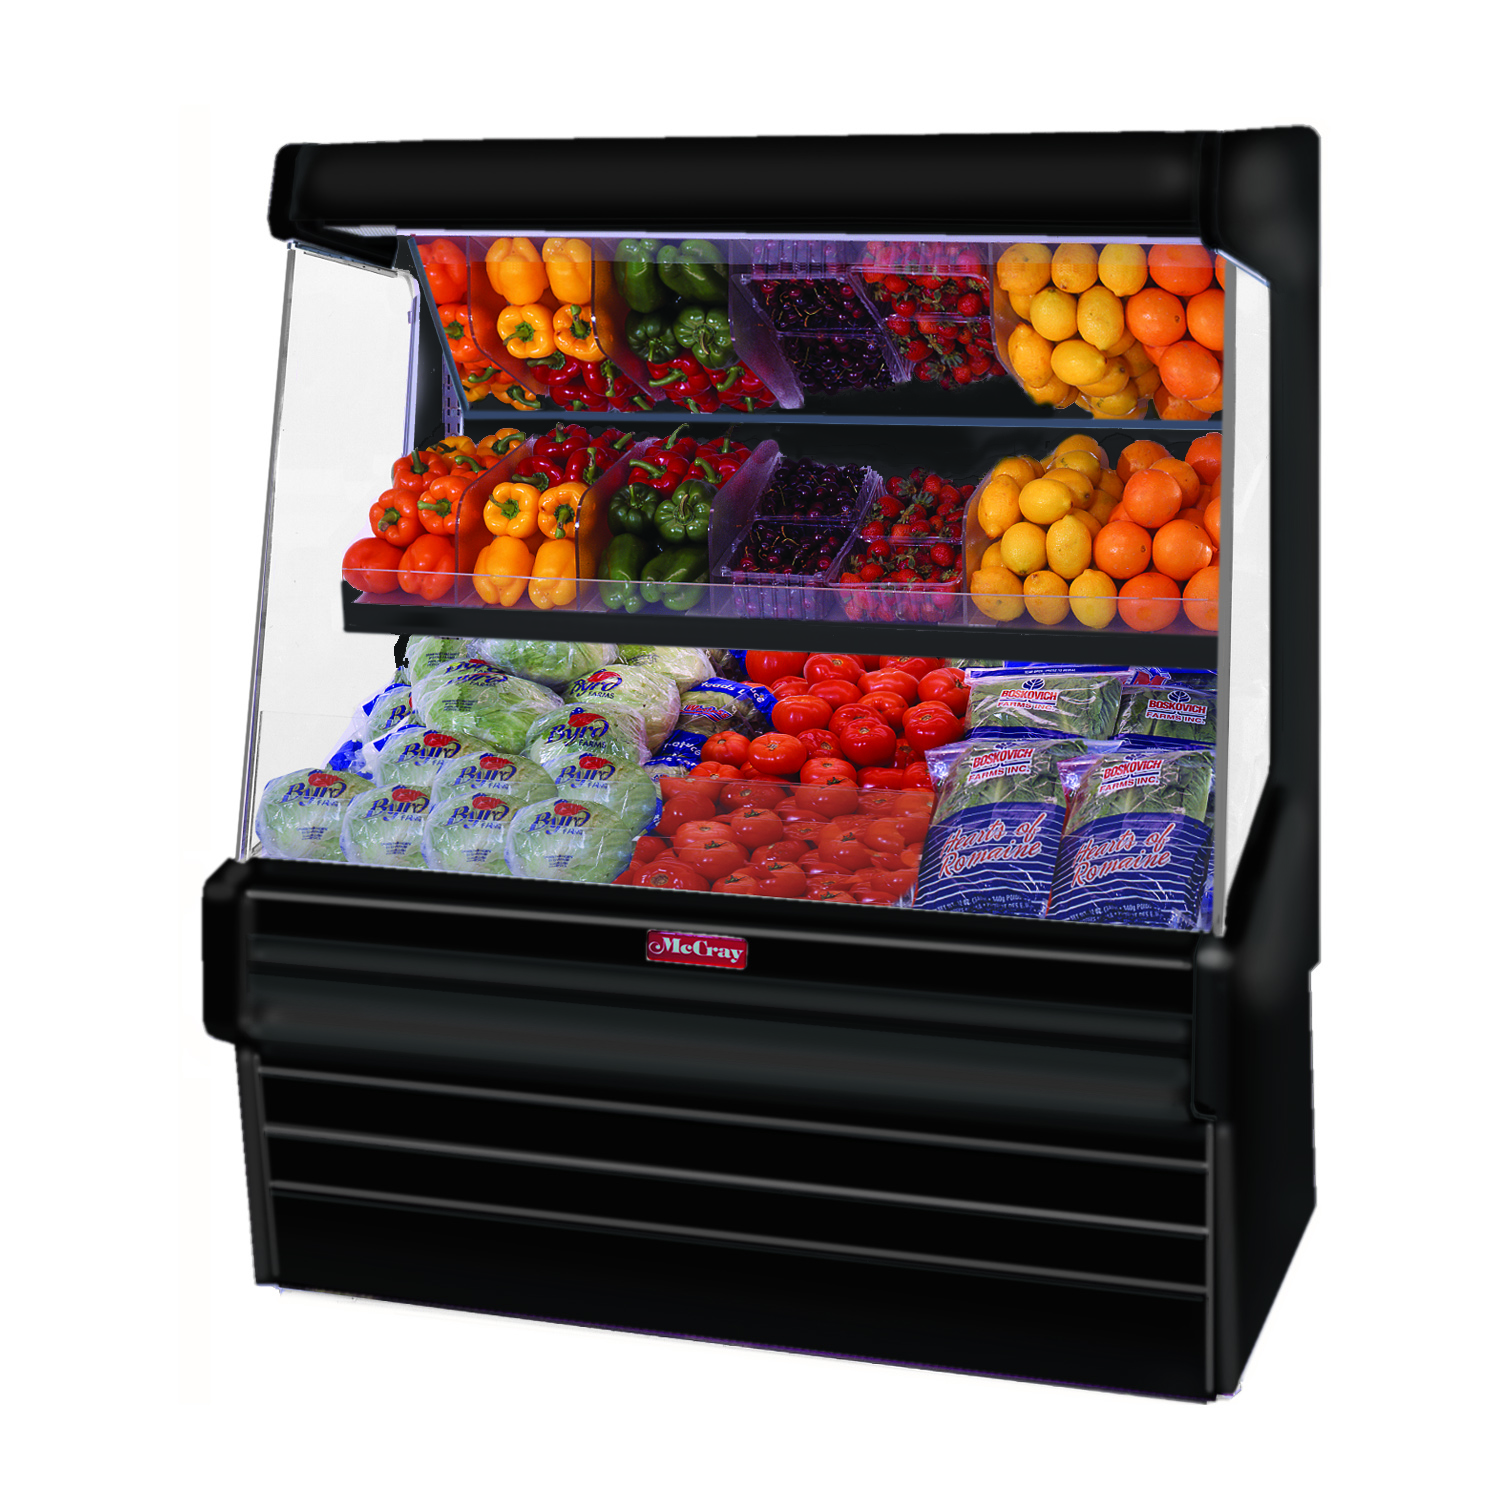 Howard-McCray R-OP30E-6L-B-LED display case, produce